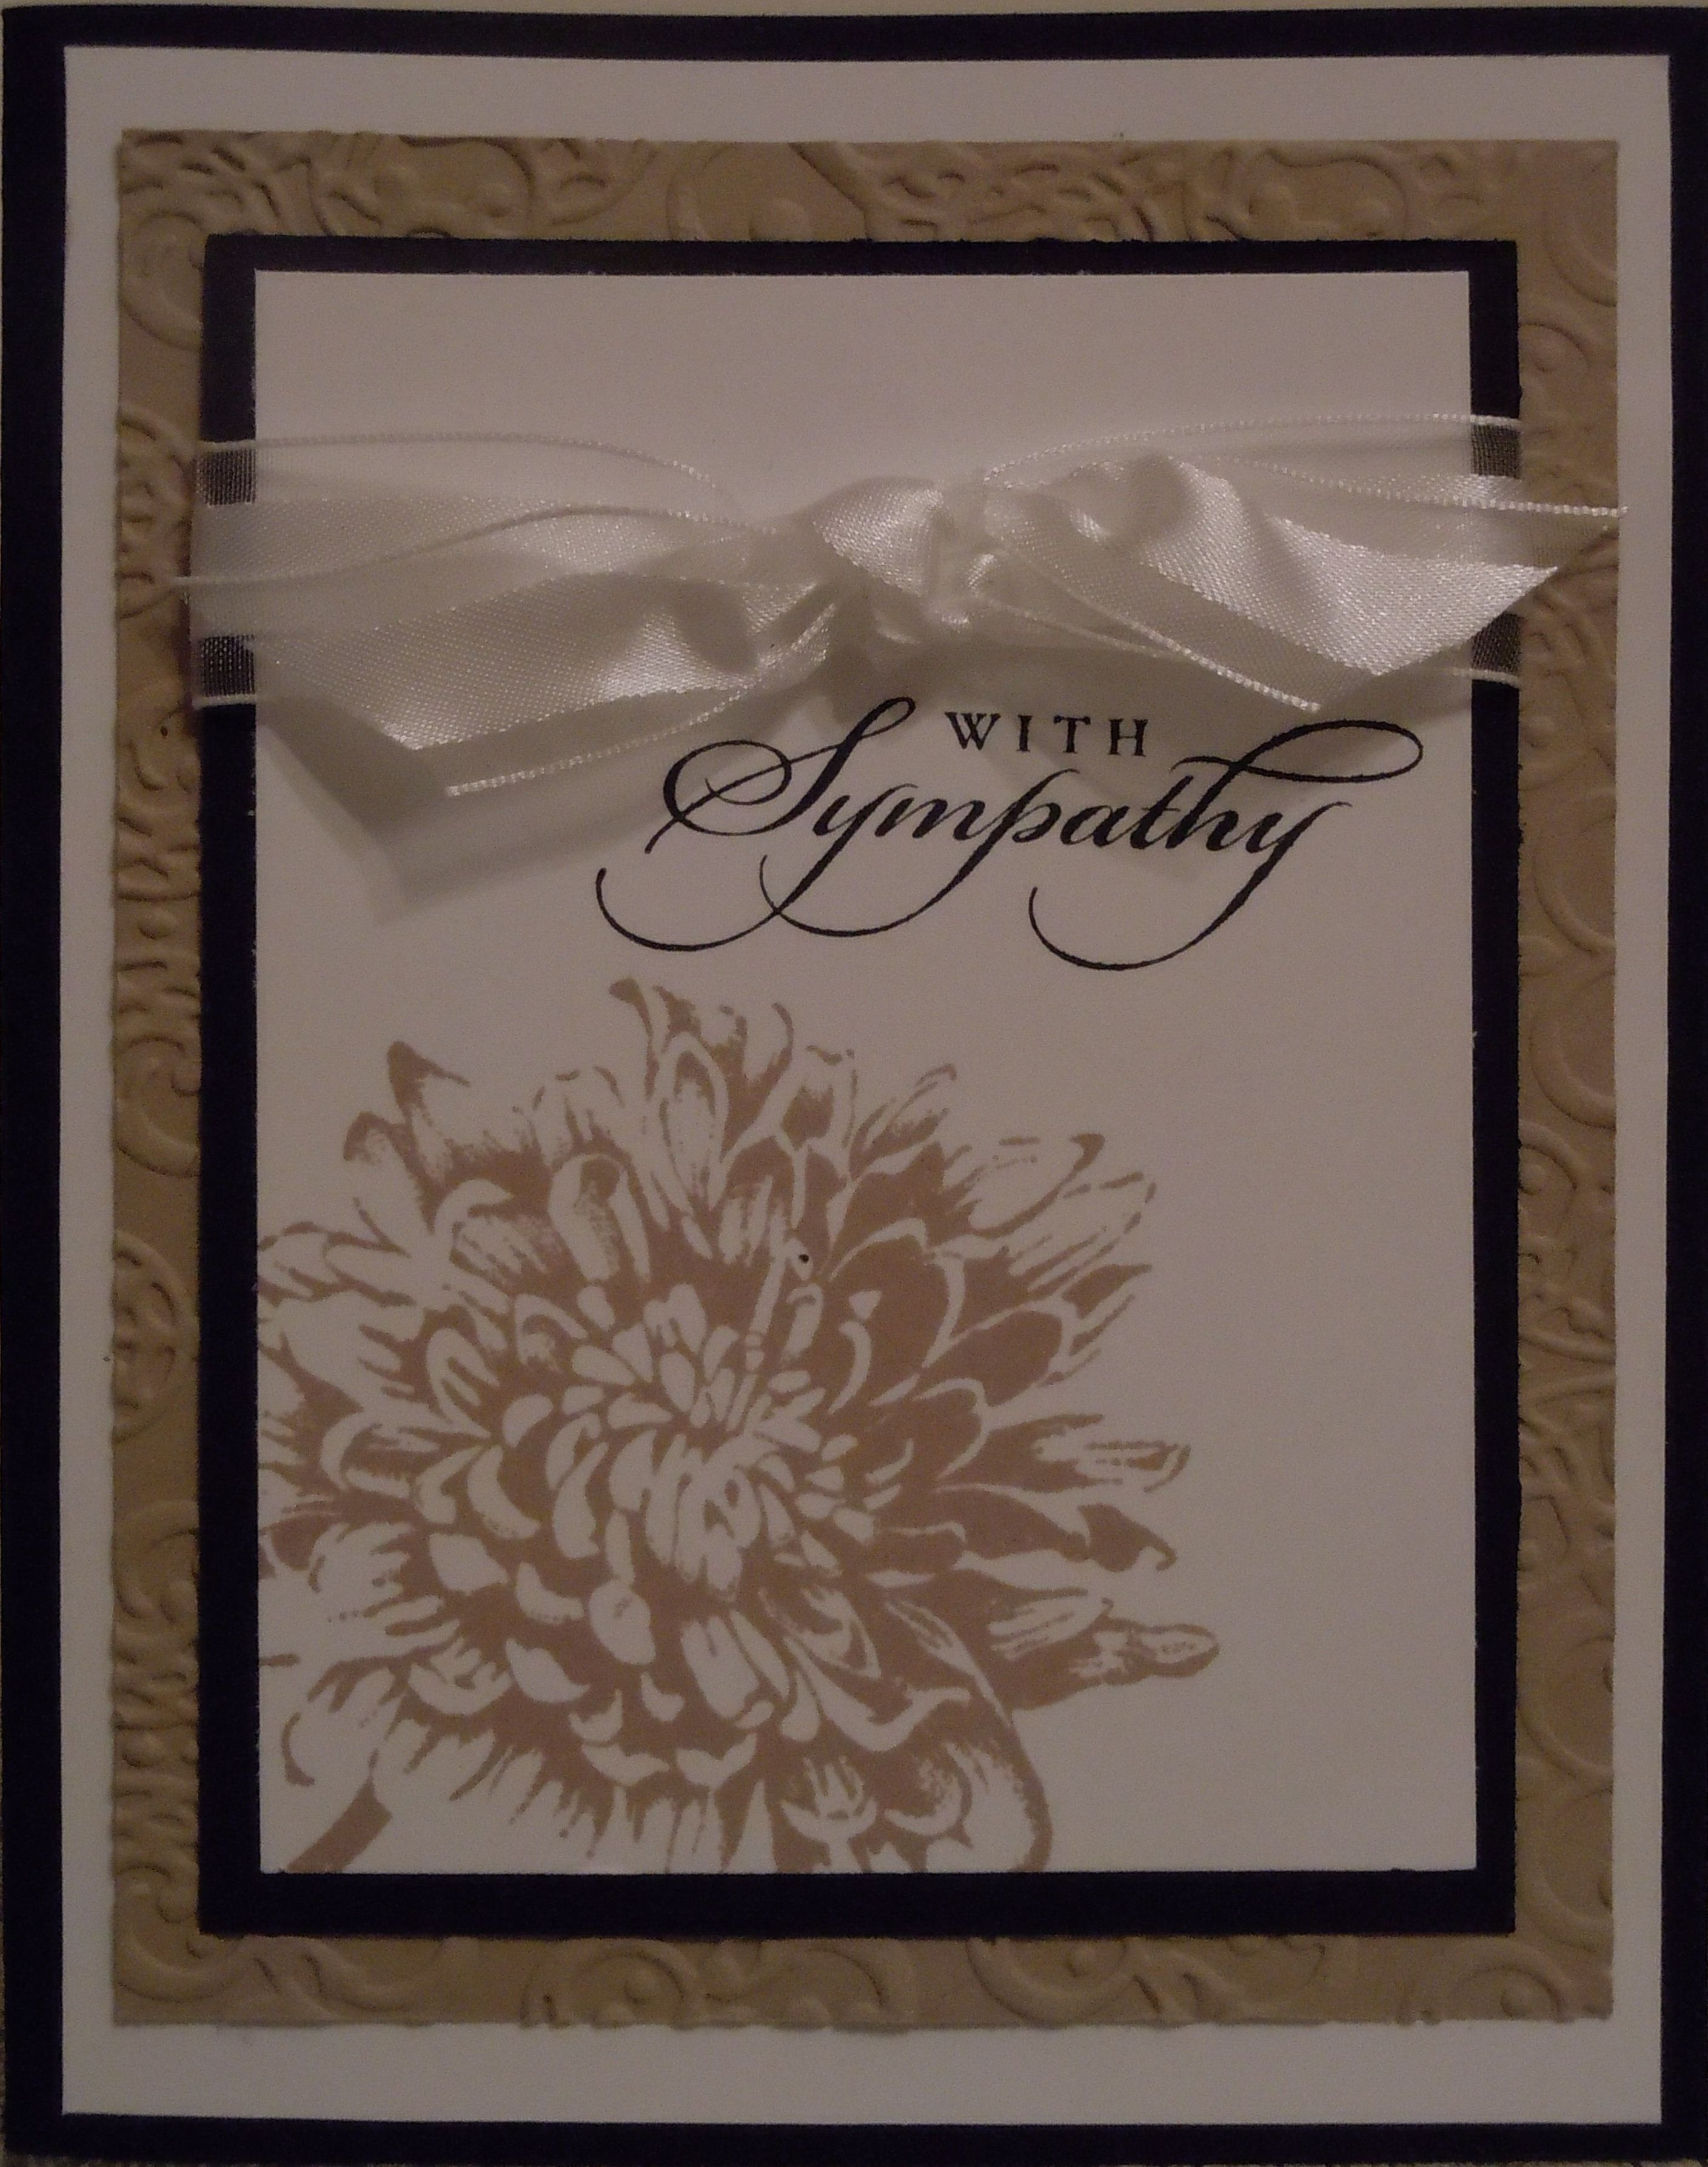 Nice Sympathy card for a man. I used Stampin' Up cardstock in Whisper White, Crumb Cake and Black. The stamp set I used is called Blooming with Kindness.